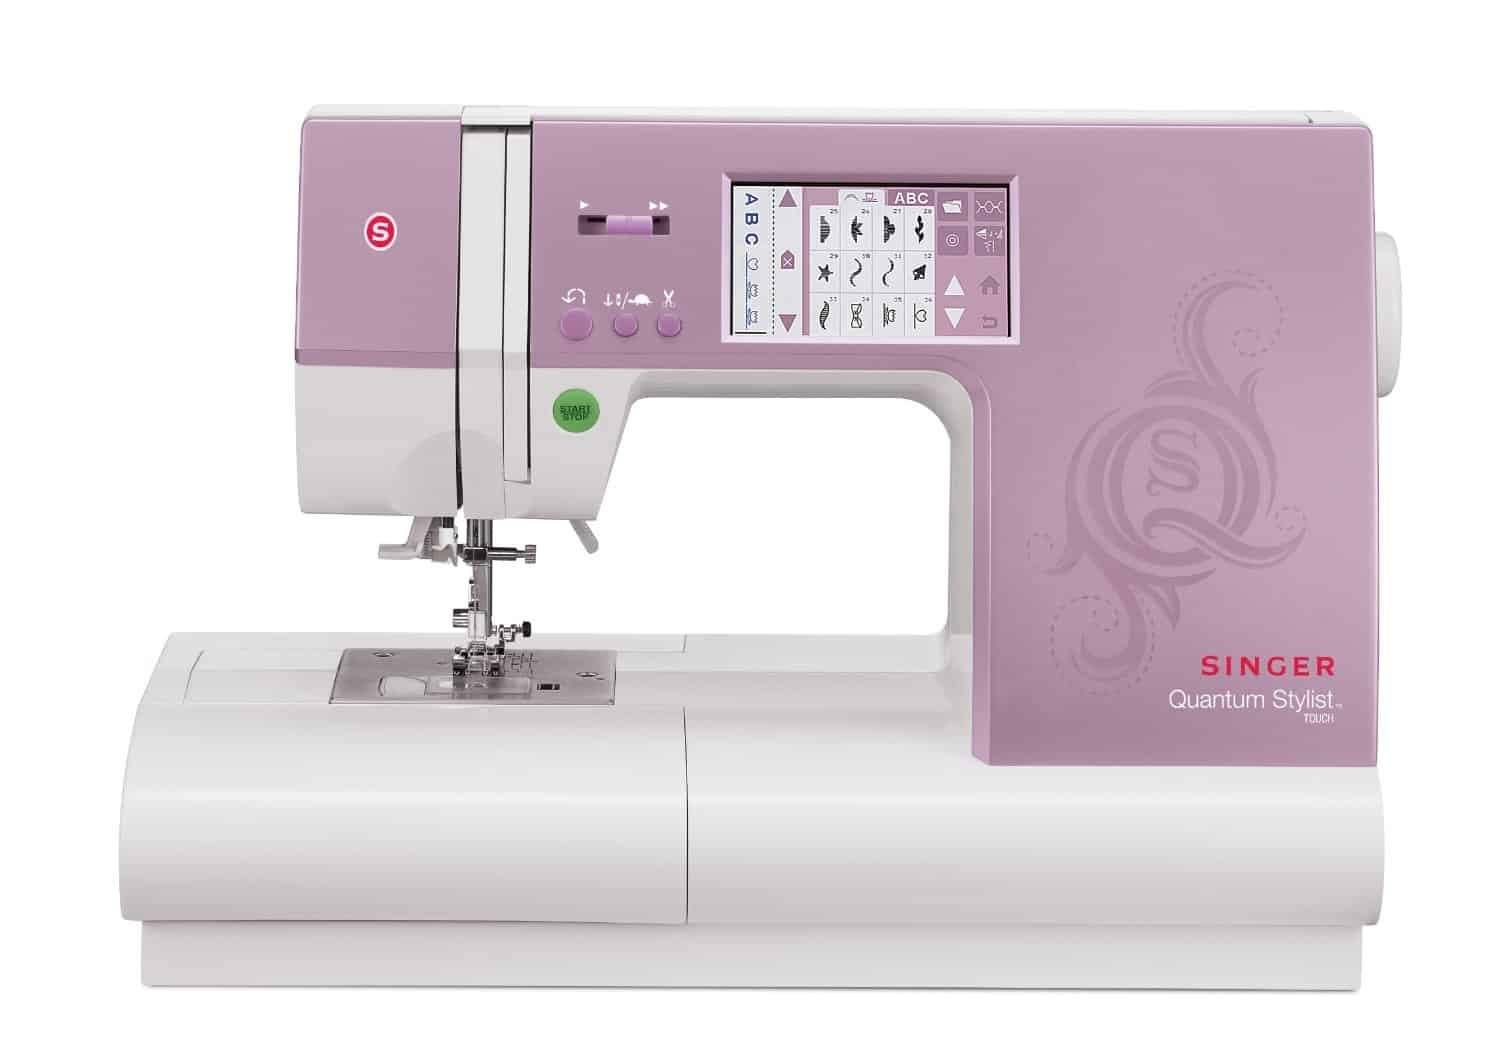 Singer Quantum Stylist TOUCH 9985 Sewing Machine Review